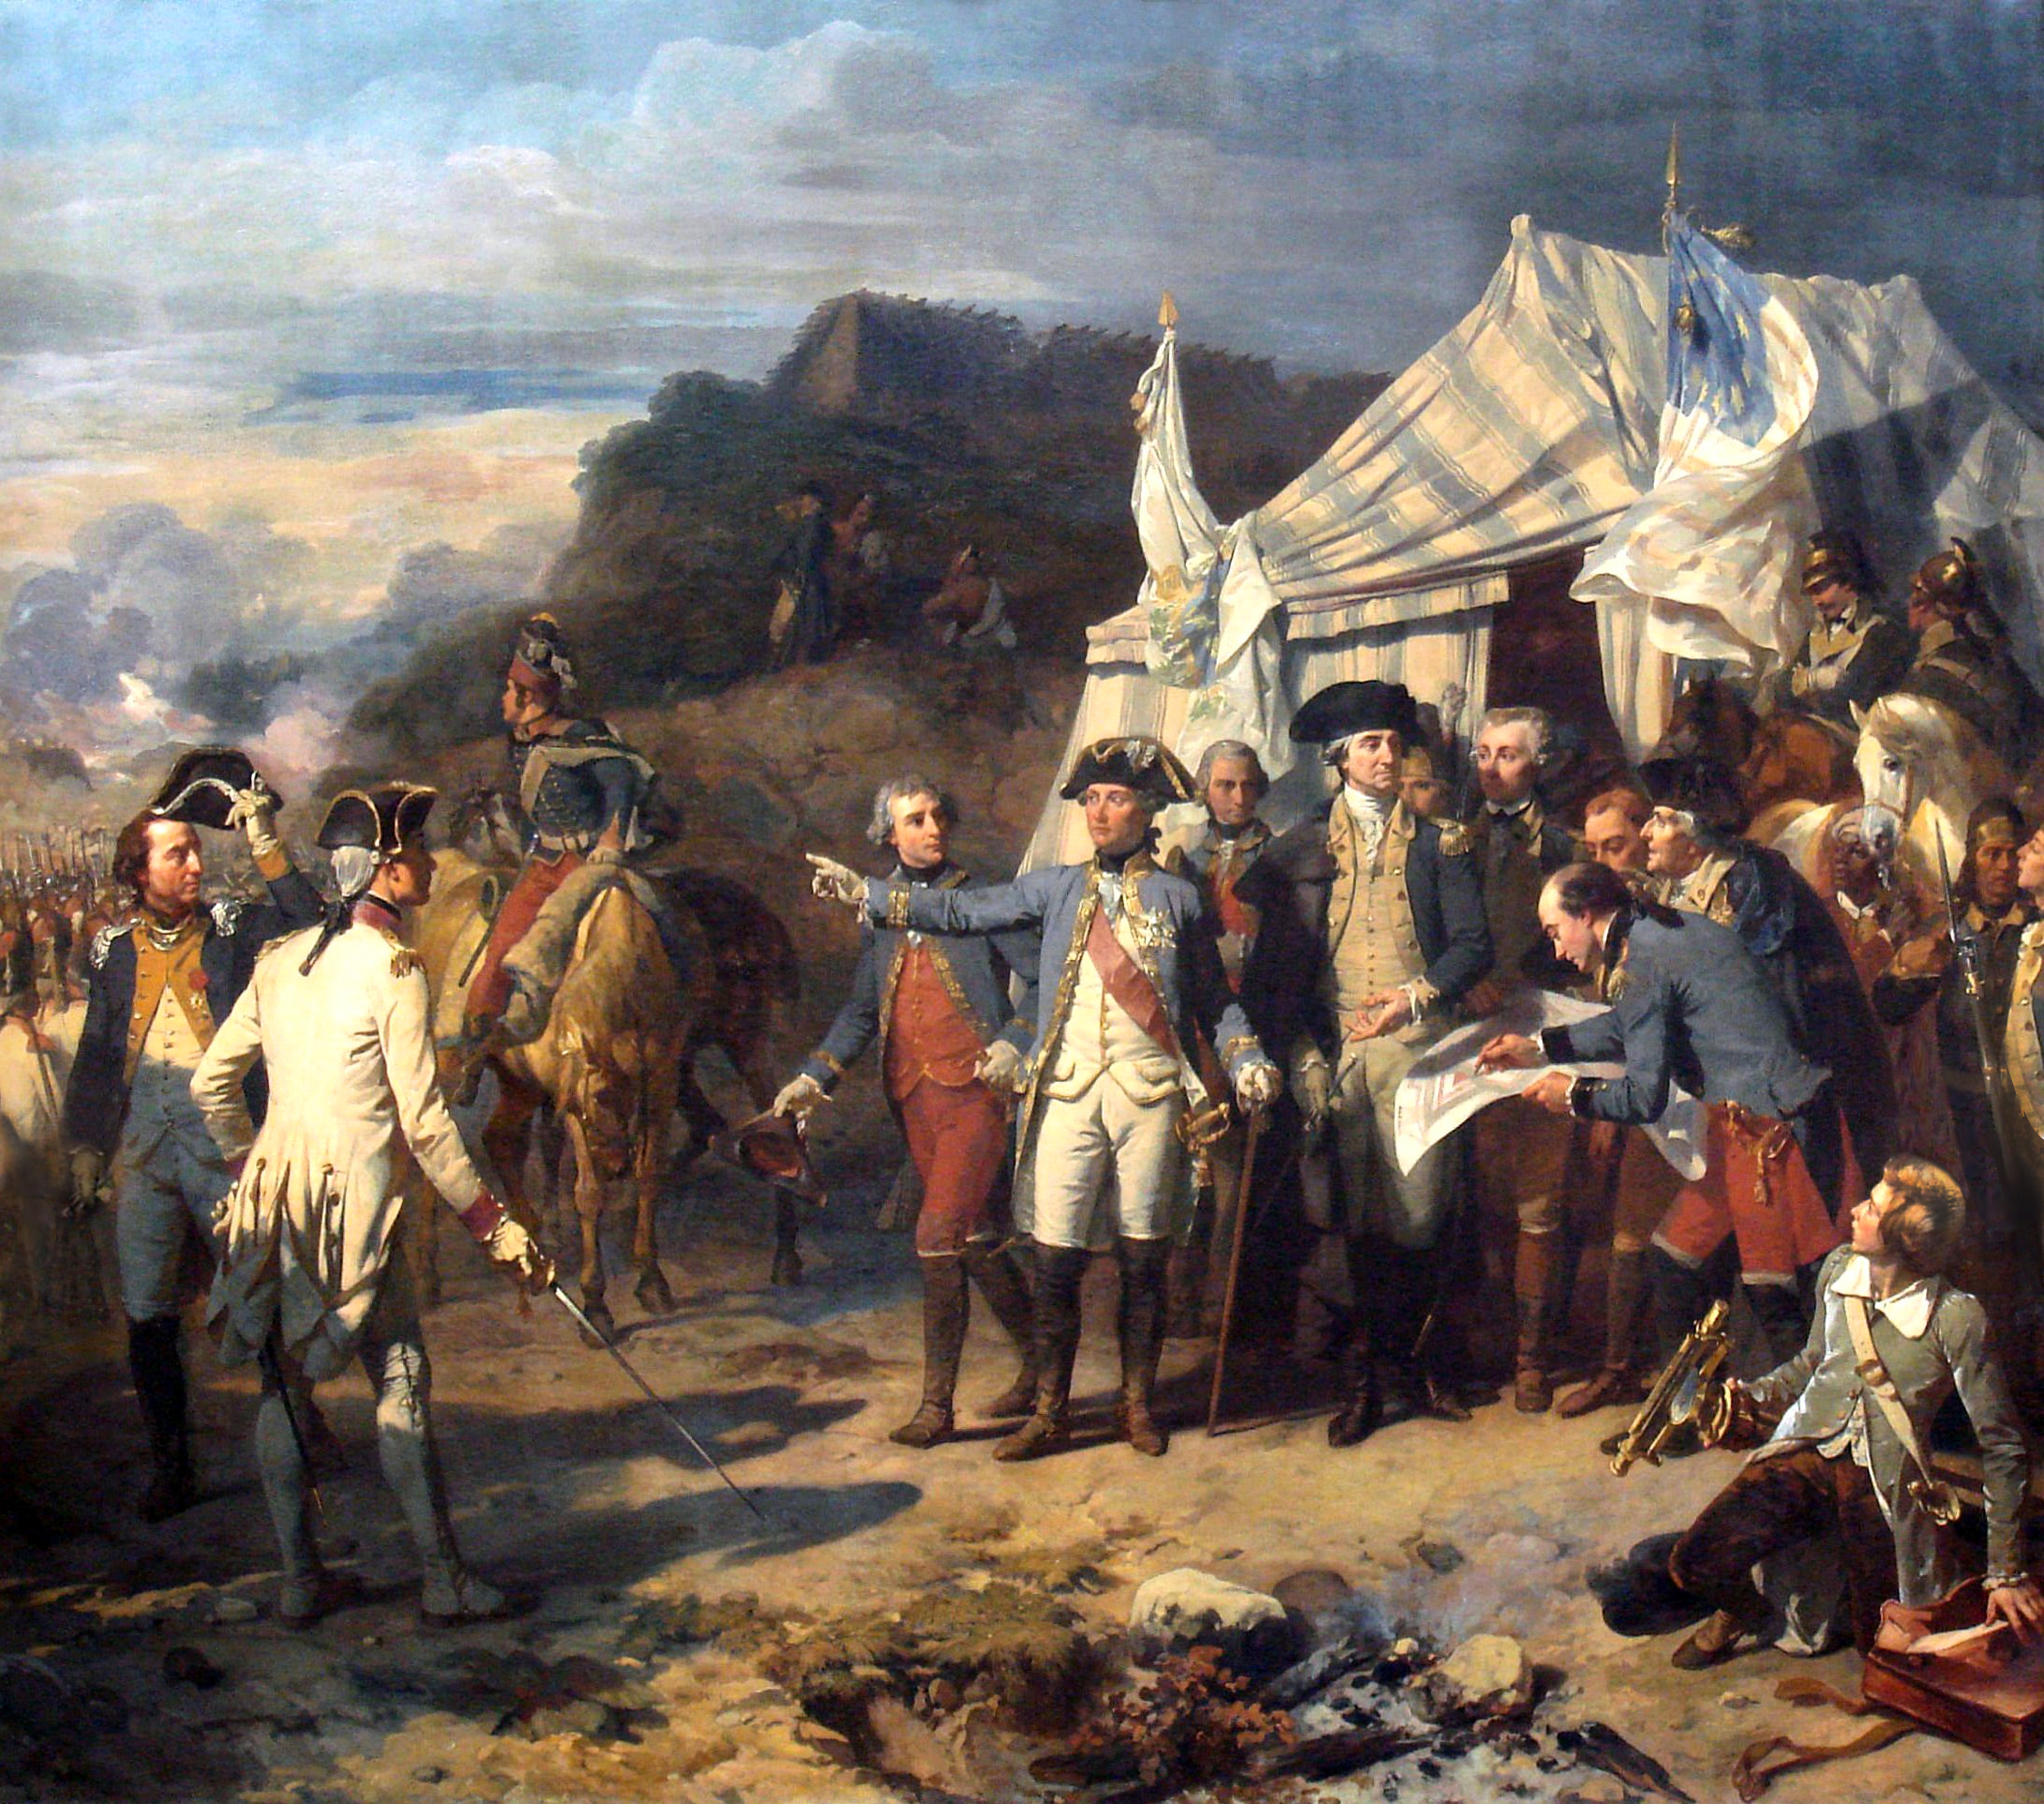 Siège de Yorktown by Auguste Couder, oil on canvas painting circa 1836. Rochambeau and Washington giving their last orders before the battle. Currently in Galerie des Batailles at the Palace of Versailles.